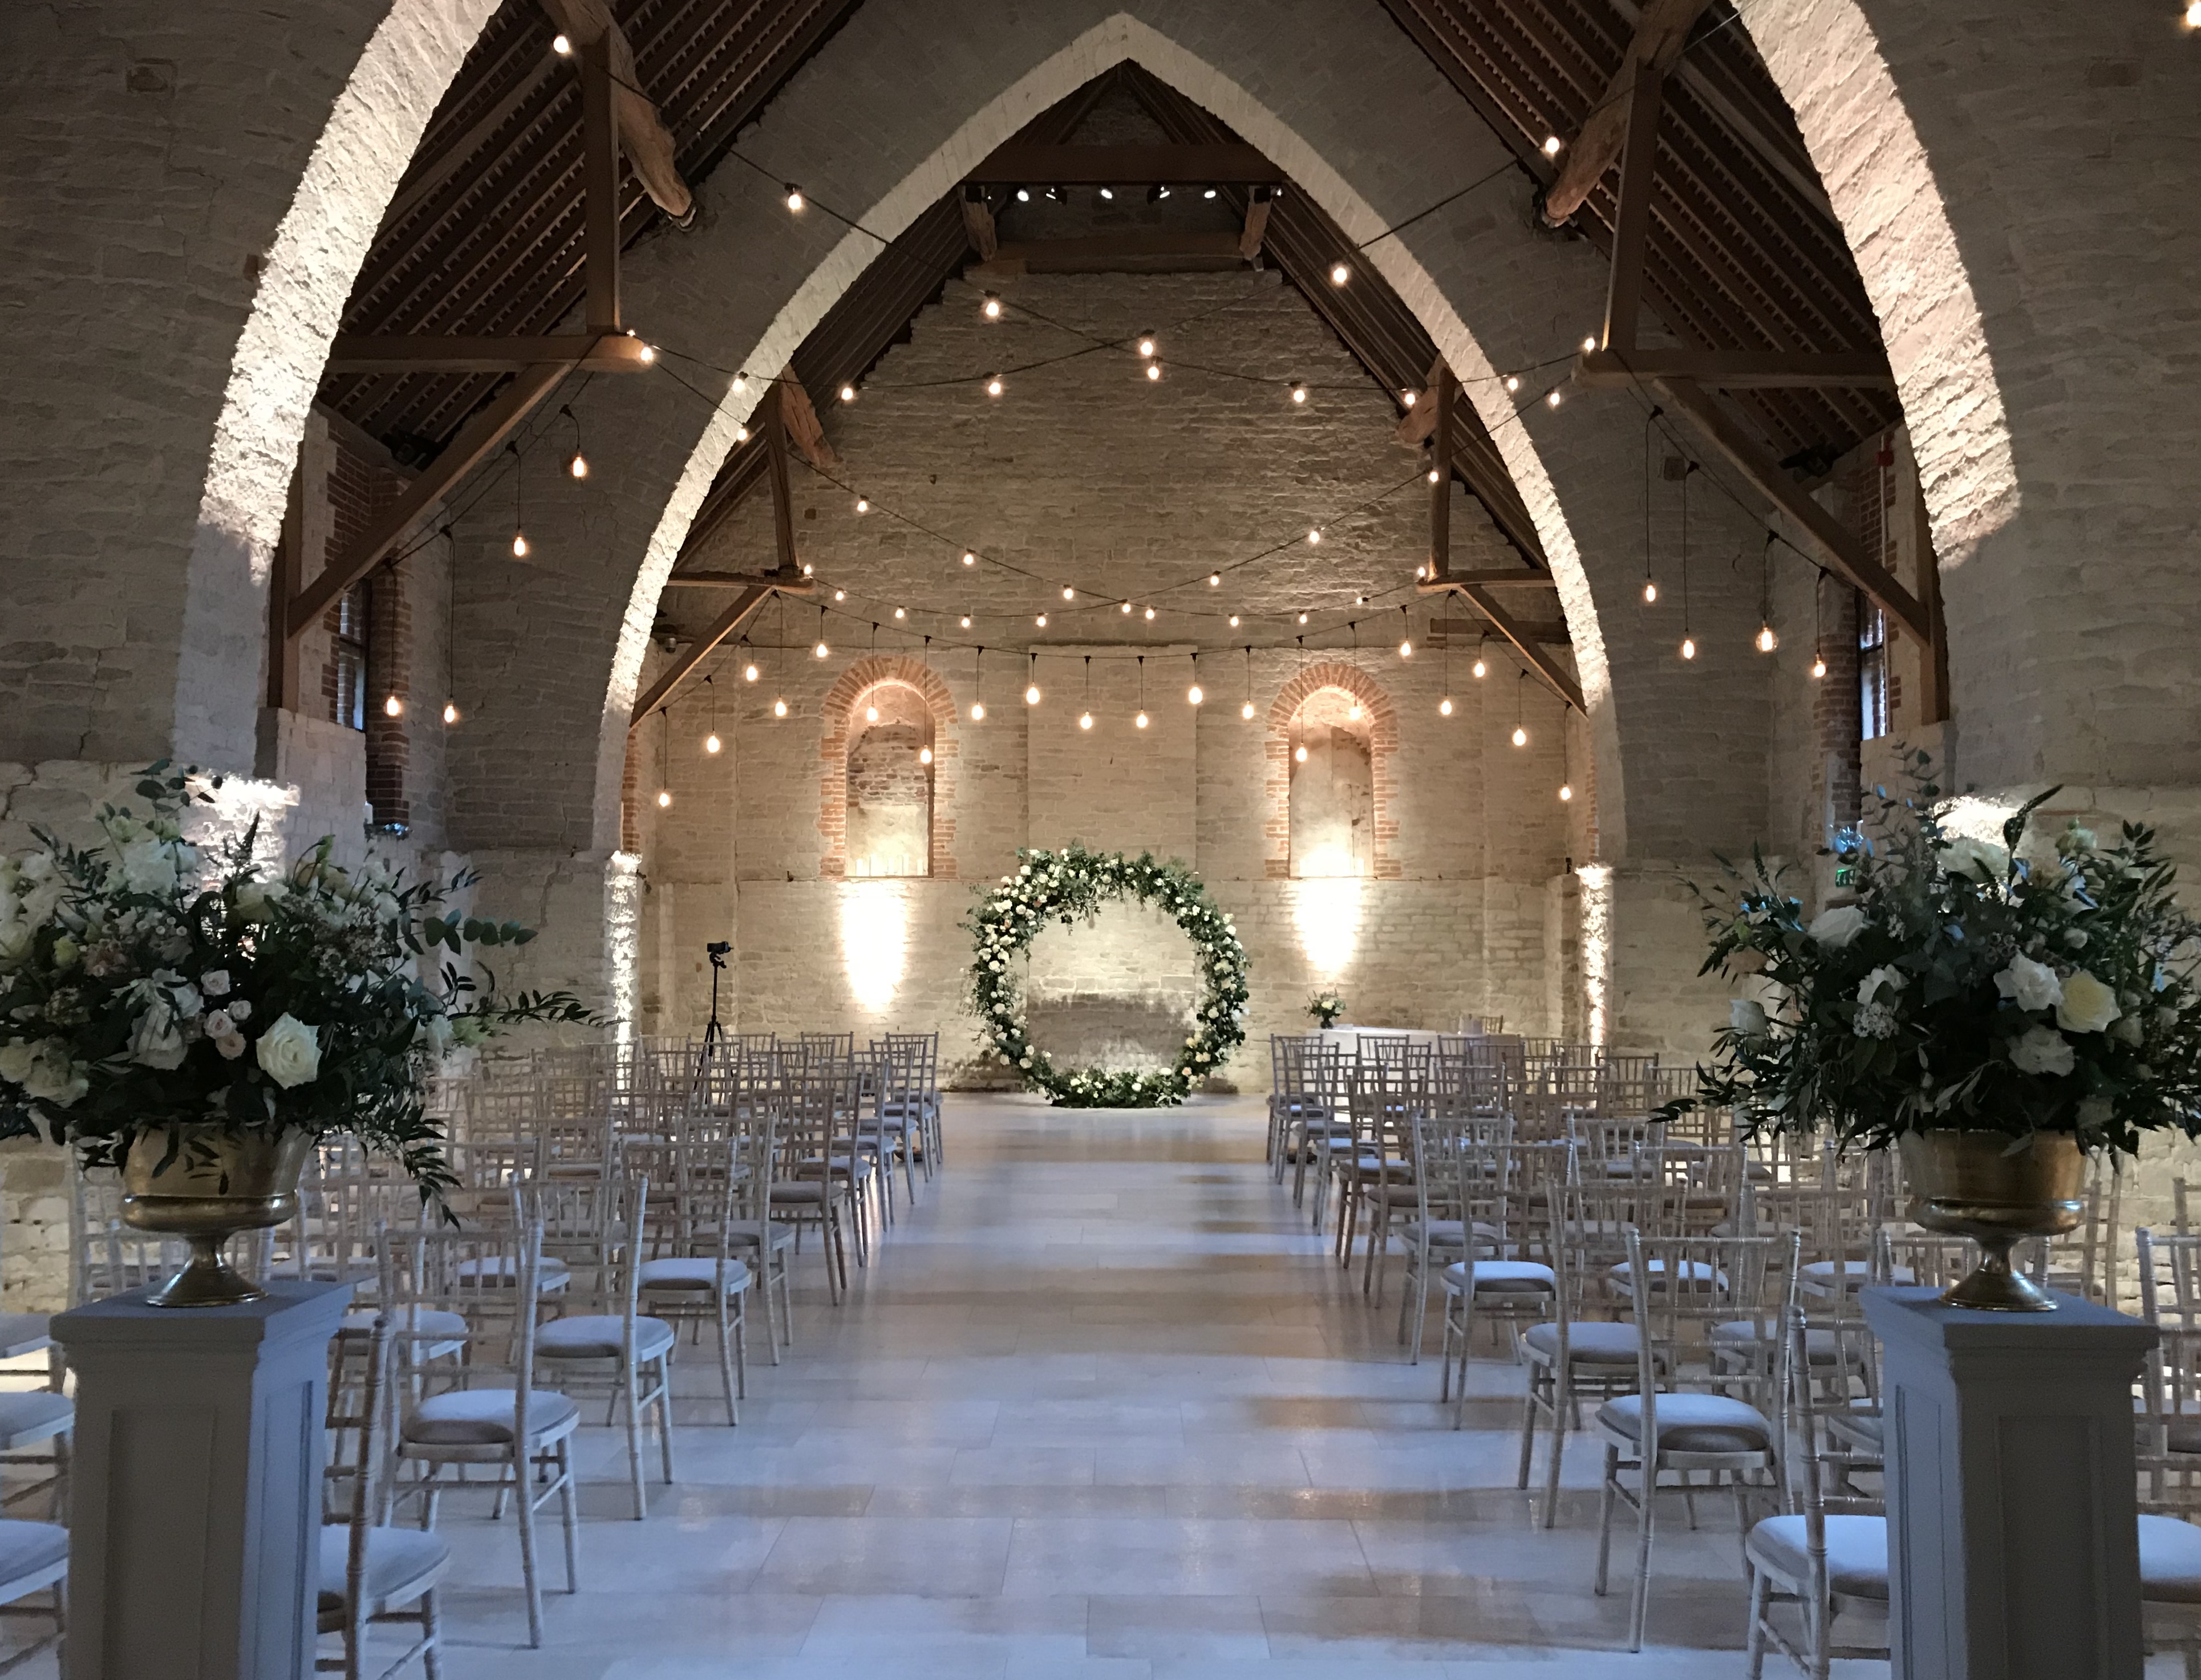 WEDDING INSPIRATION WEEKEND  SATURDAY 9th & SUNDAY 10TH NOVEMBER 10 am – 3 pm  Please call or email for further details